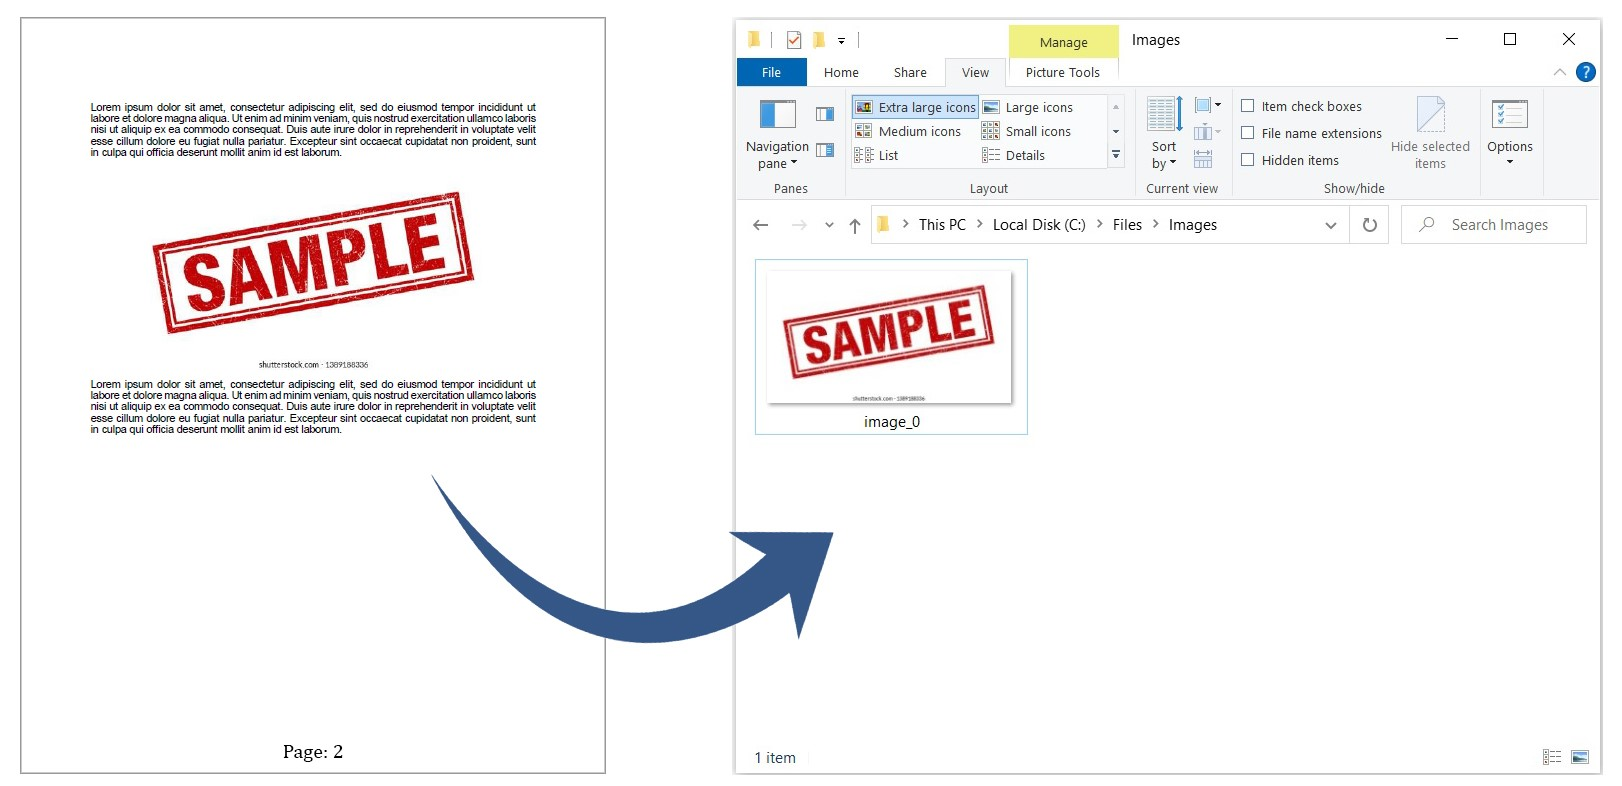 Extract images by page number range from PDF document.